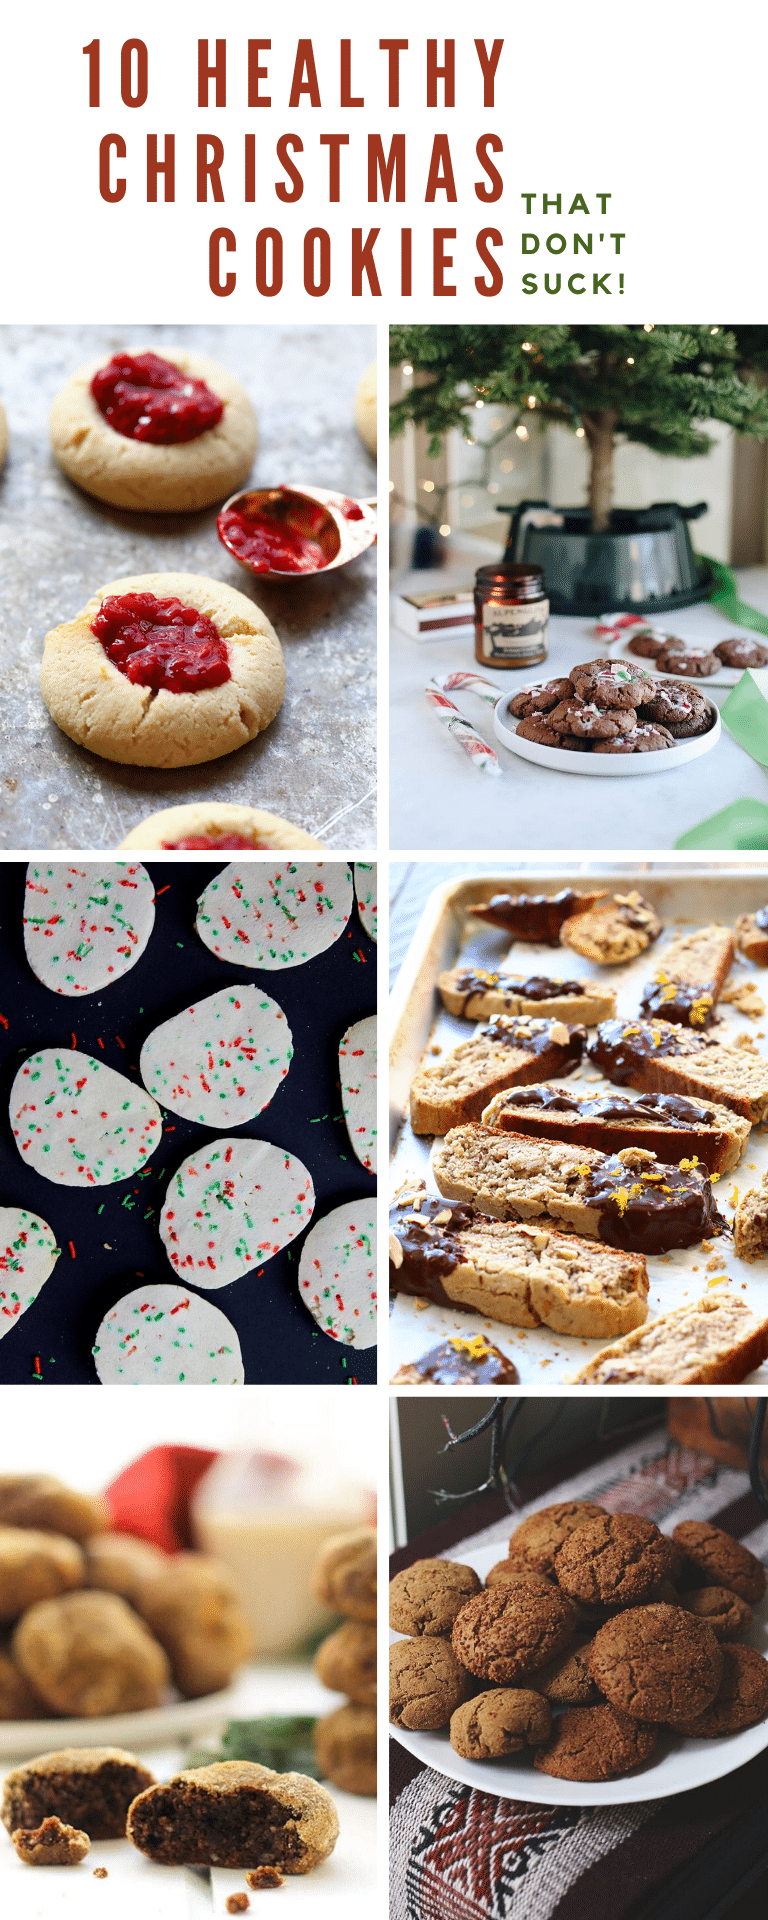 10 Healthy Christmas Cookies...that don't suck!